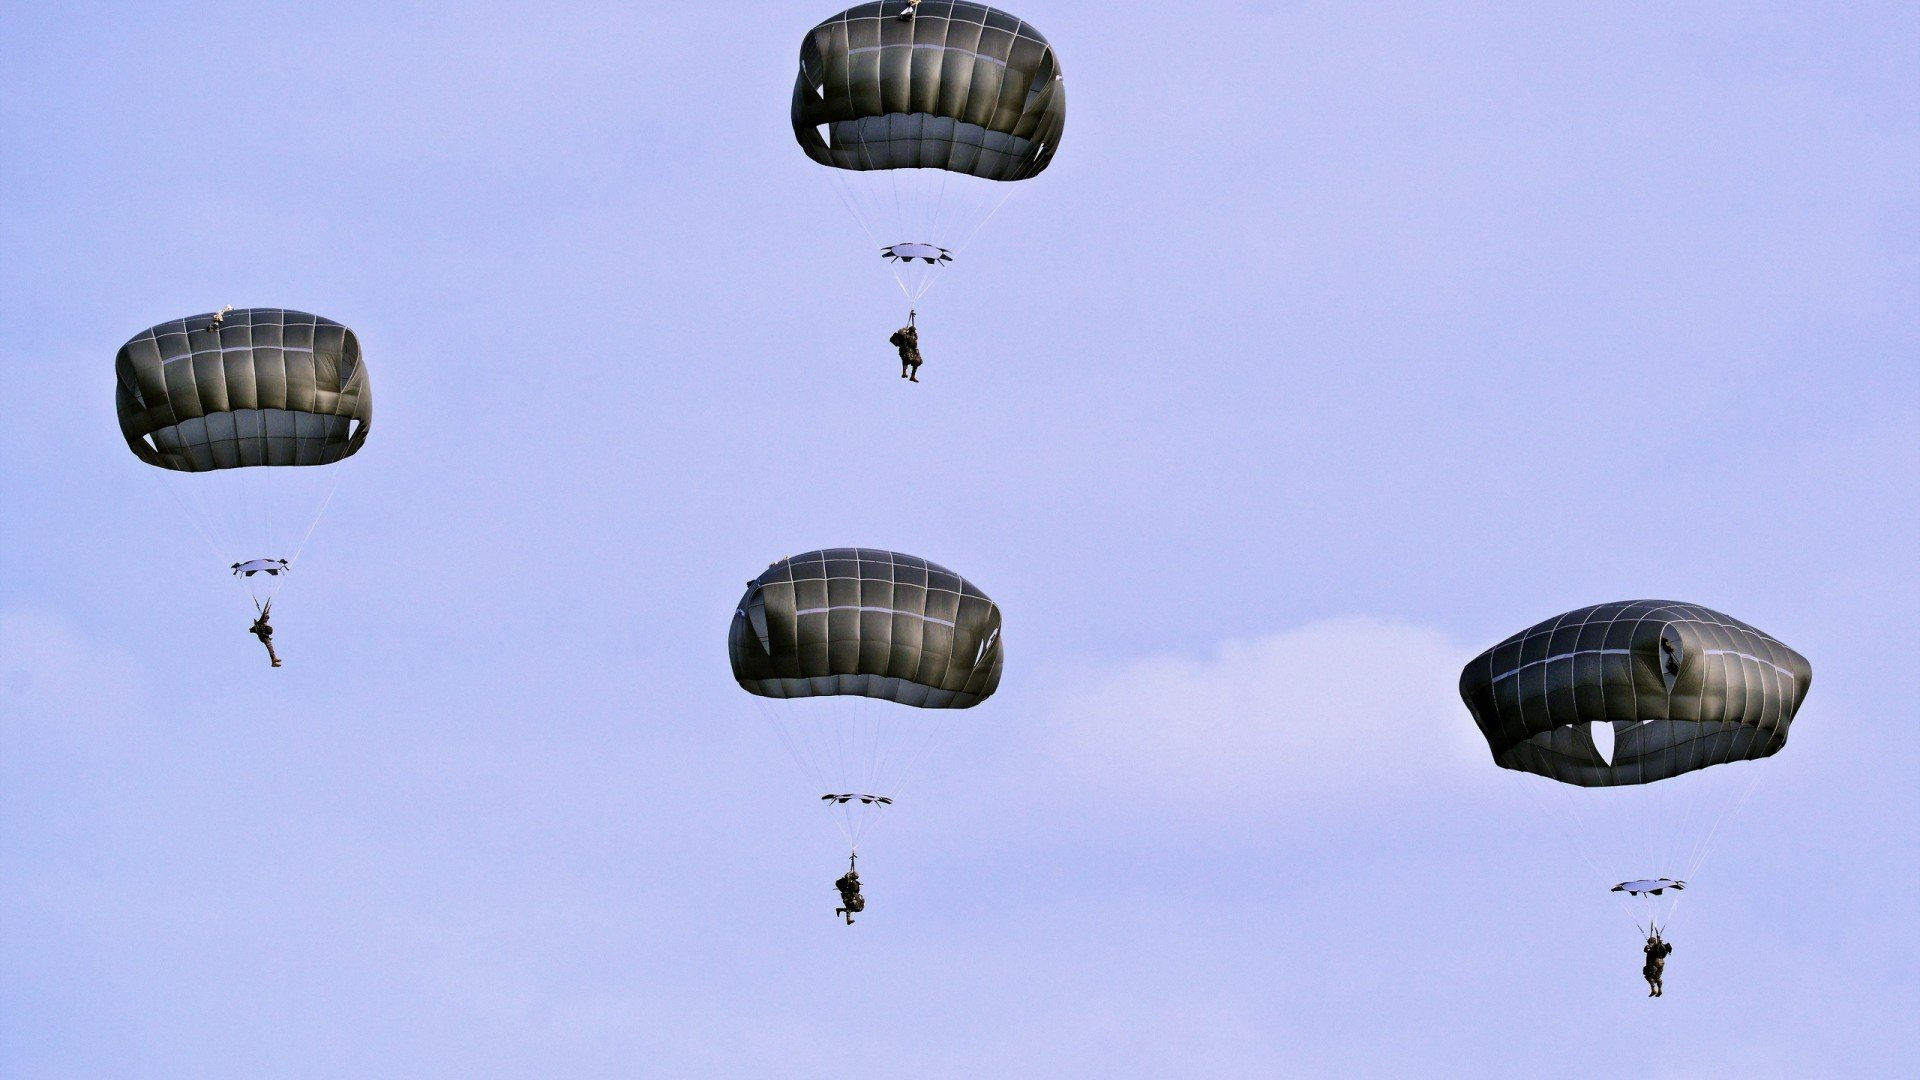 [48+] Paratrooper Wallpaper Images on WallpaperSafari